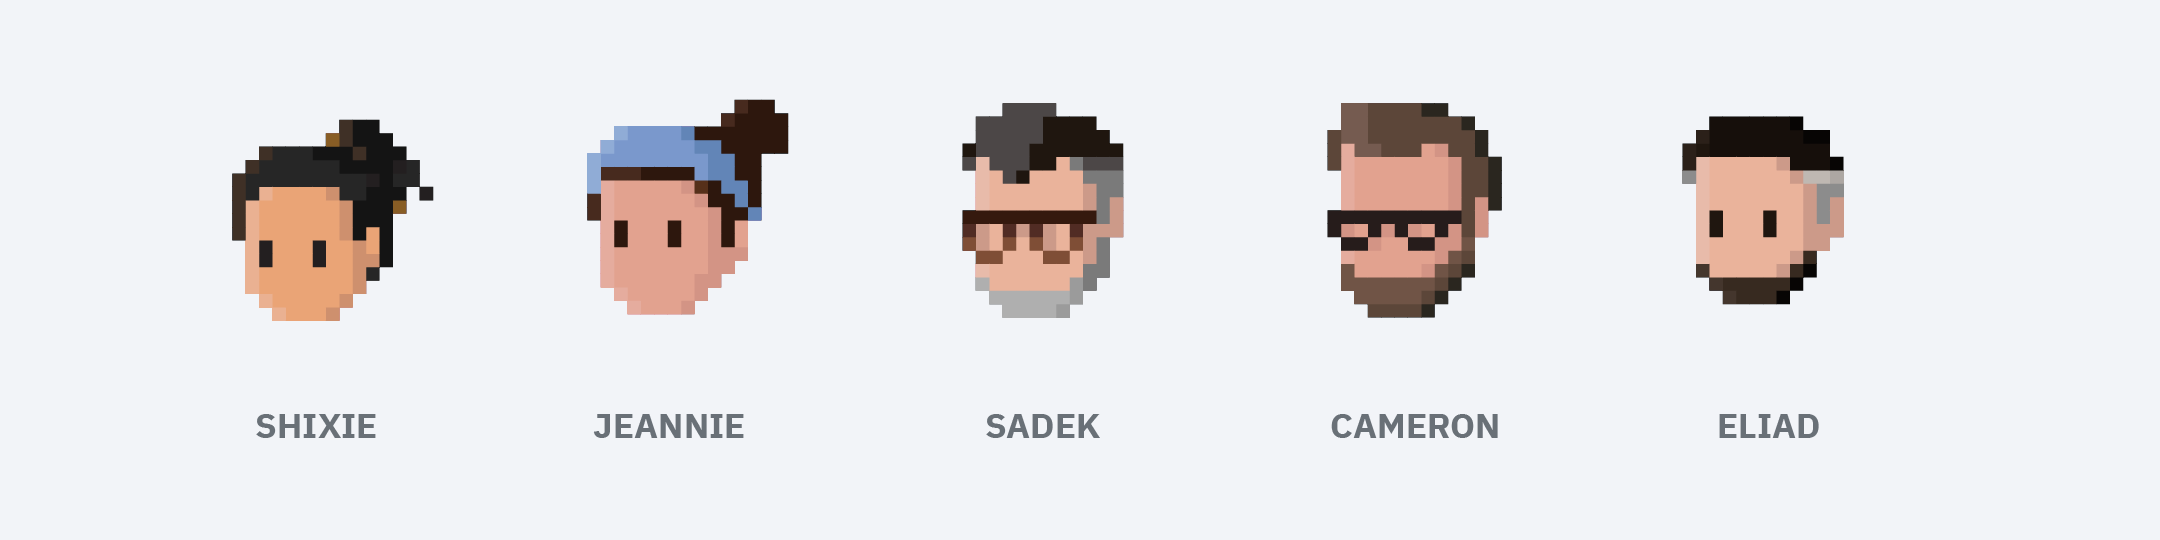 8-bit portraits of Shixie, Jeannie, Sadek, Cameron and Eliad